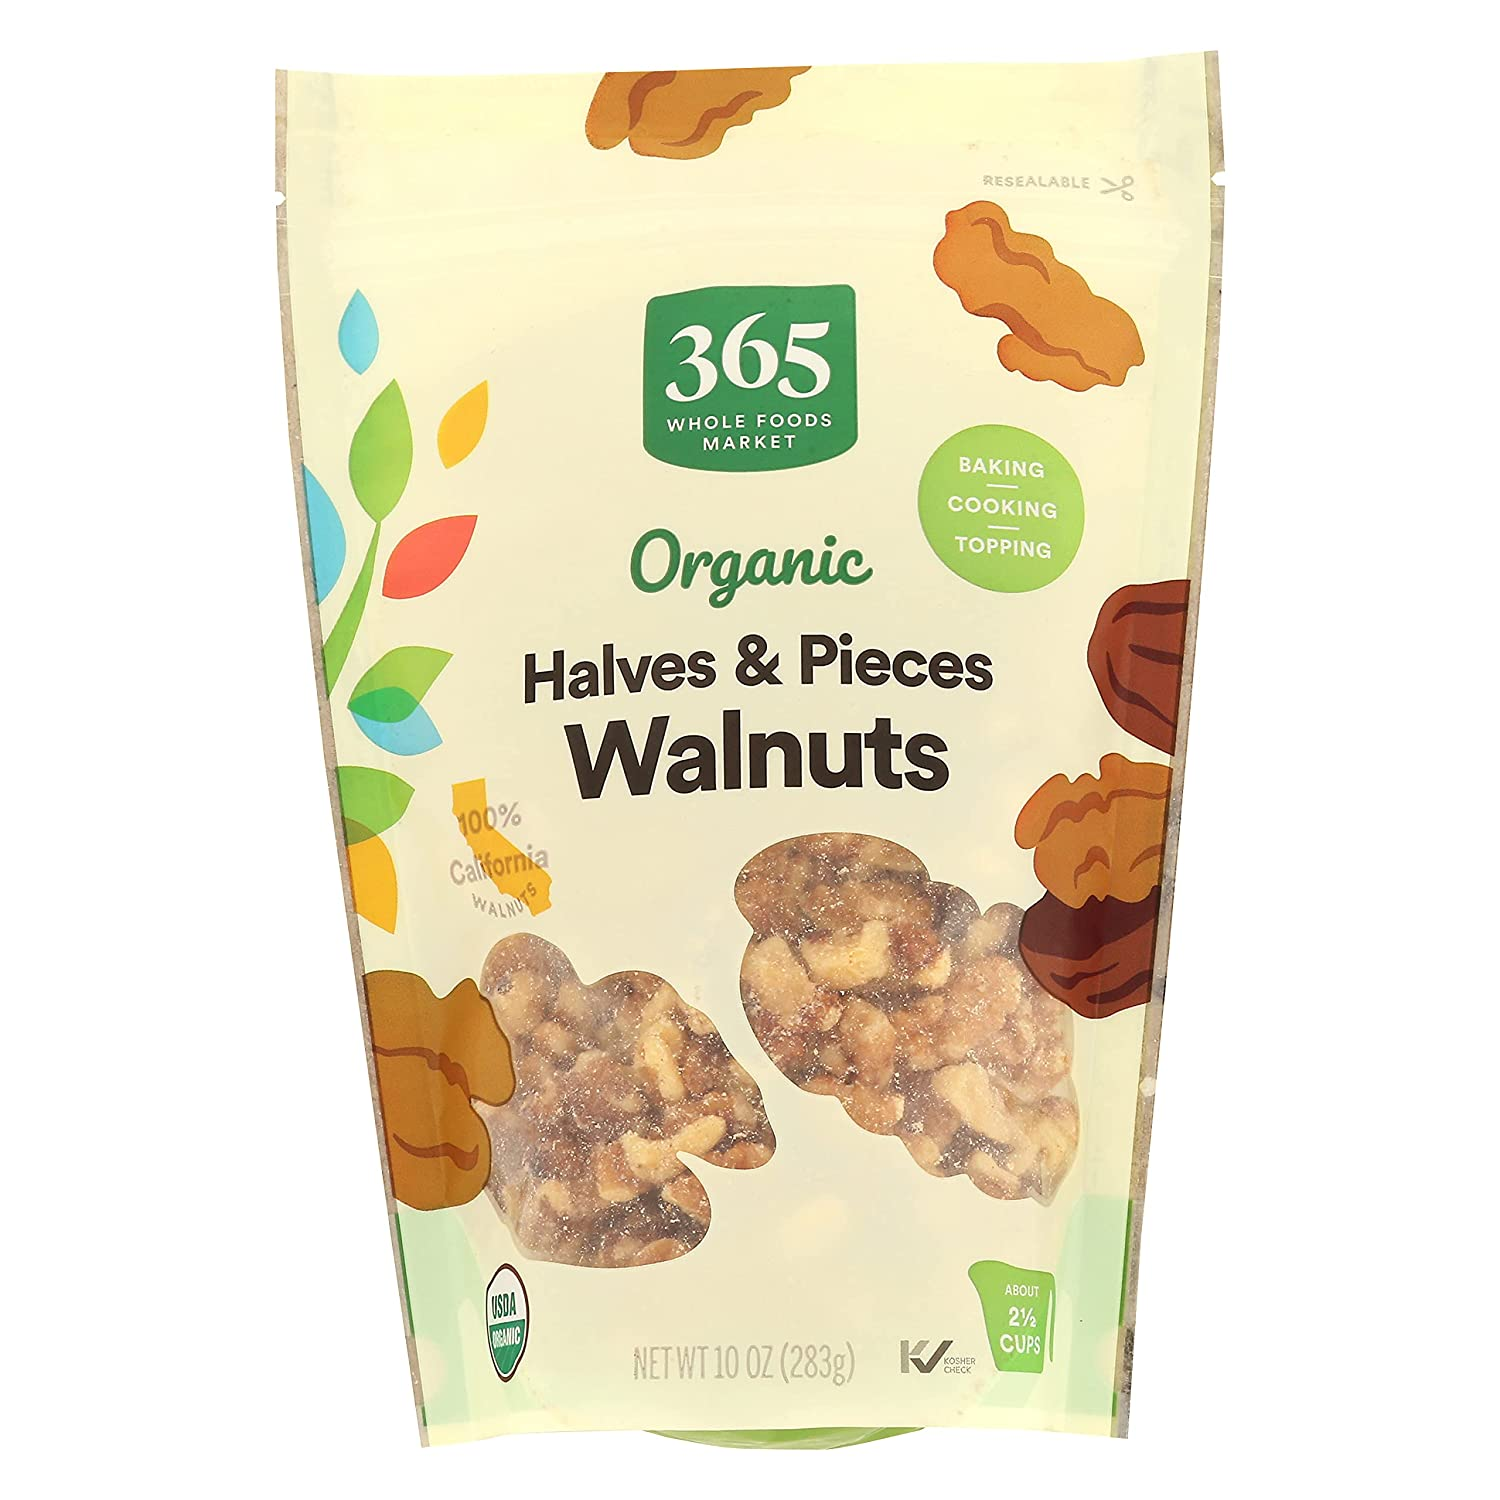 365 by Cheap super special price WFM Walnuts Halves Ounce Pieces 10 Clearance SALE Limited time Organic